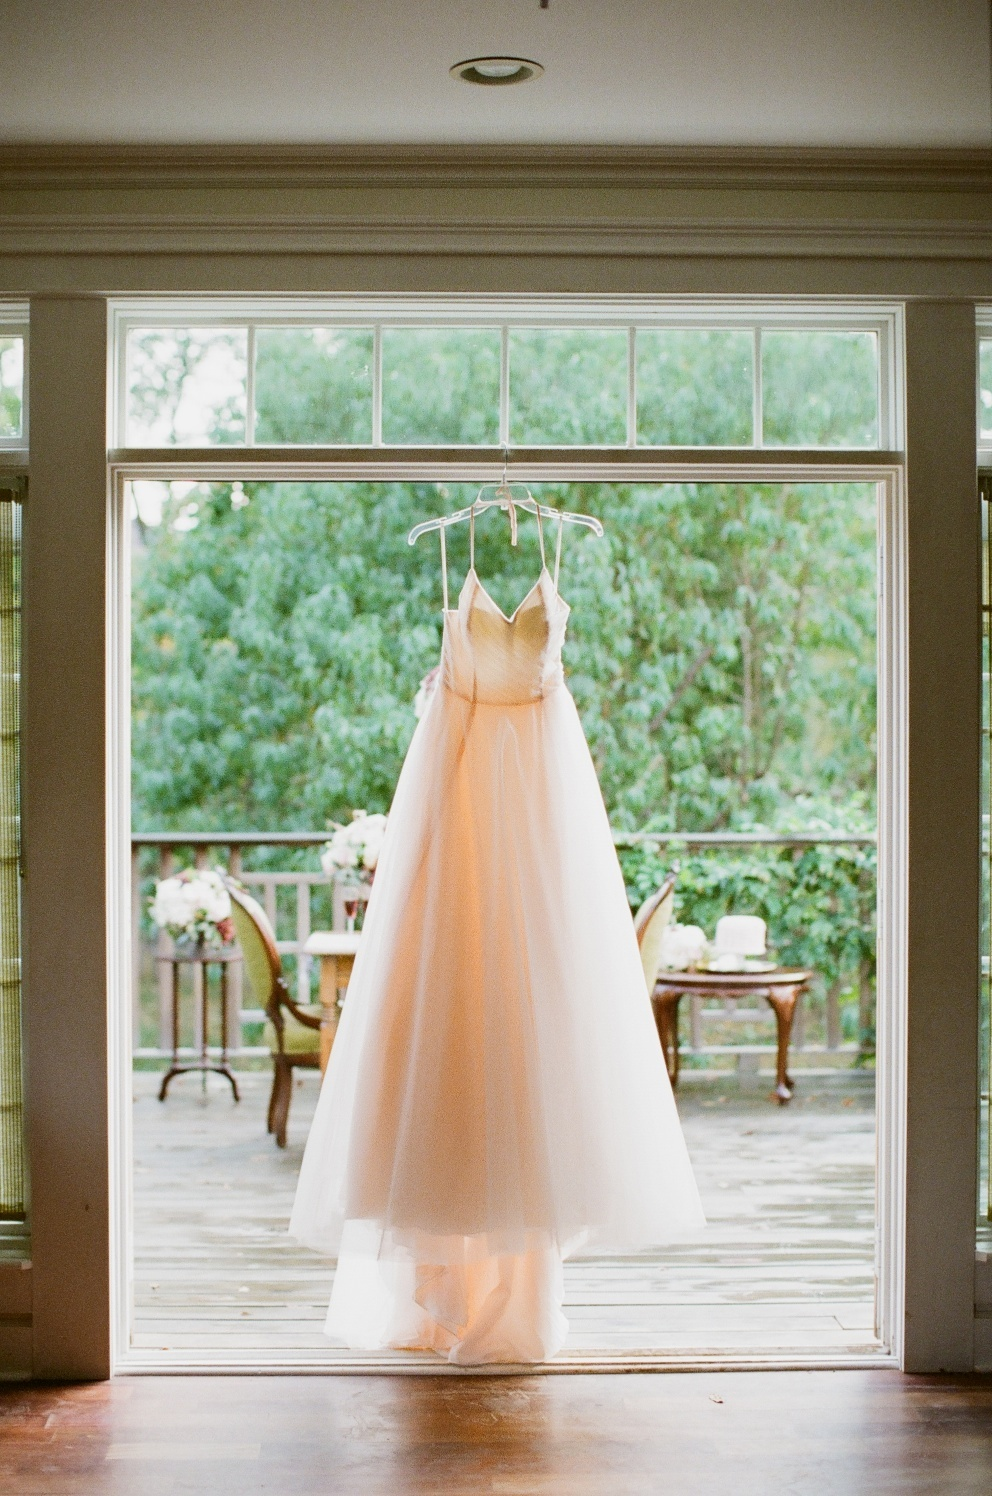 Brides-ivory-wedding-dress-hangs-in-window.full